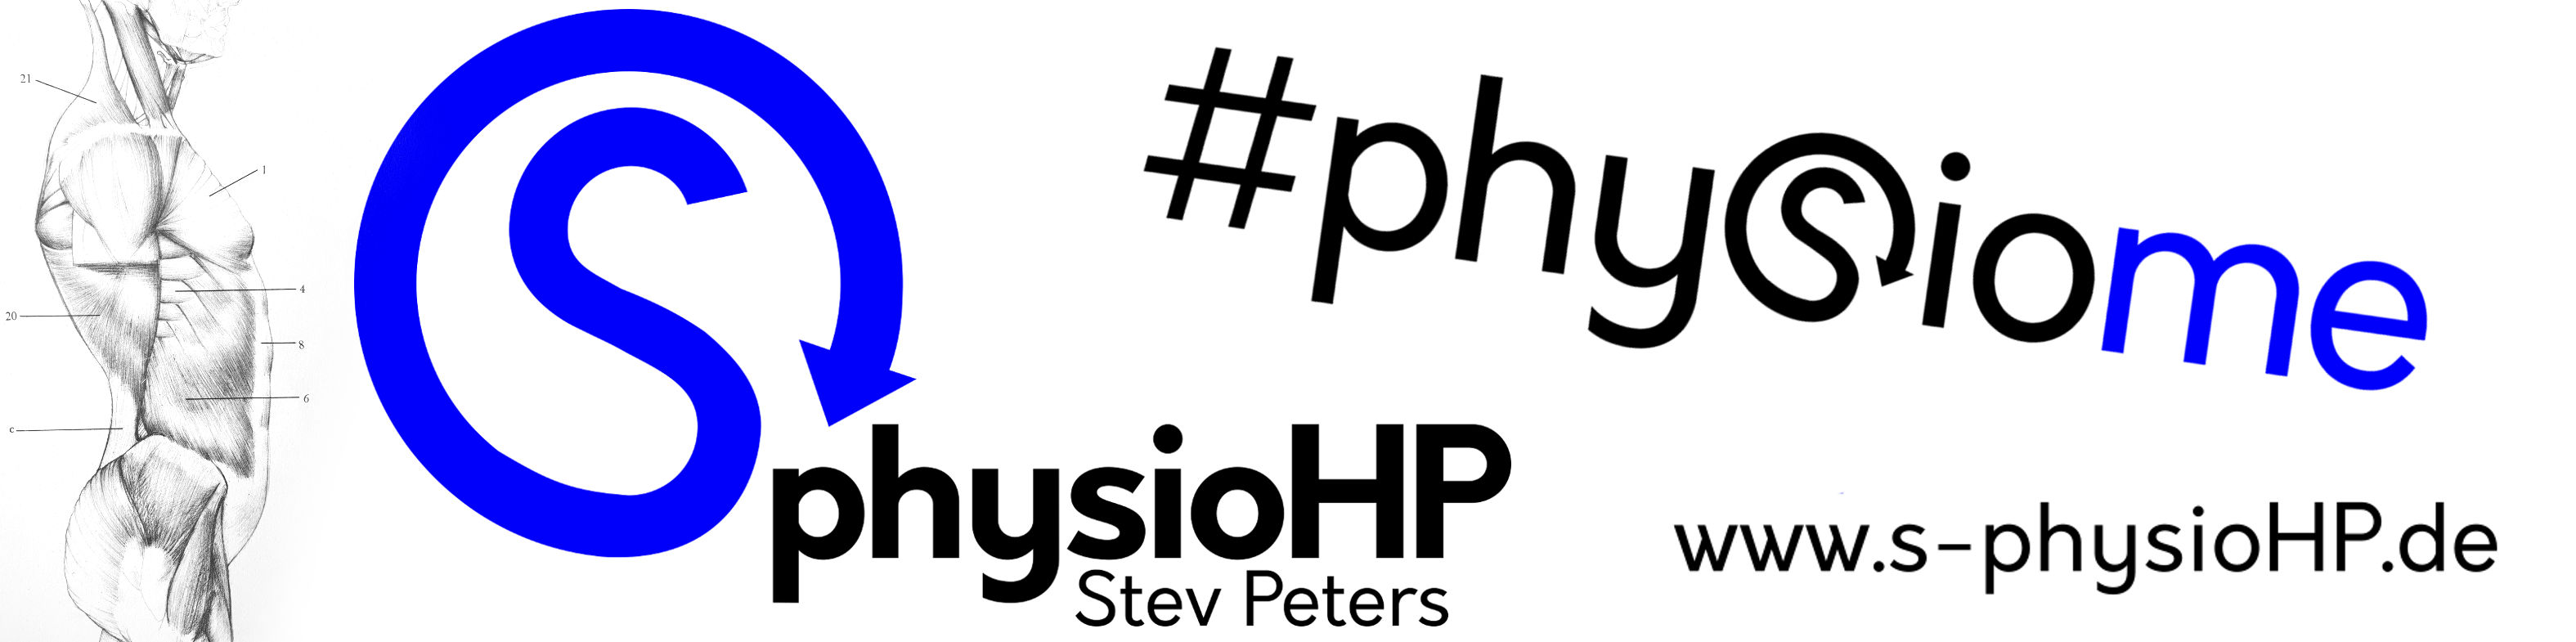 logo s physio stevsport